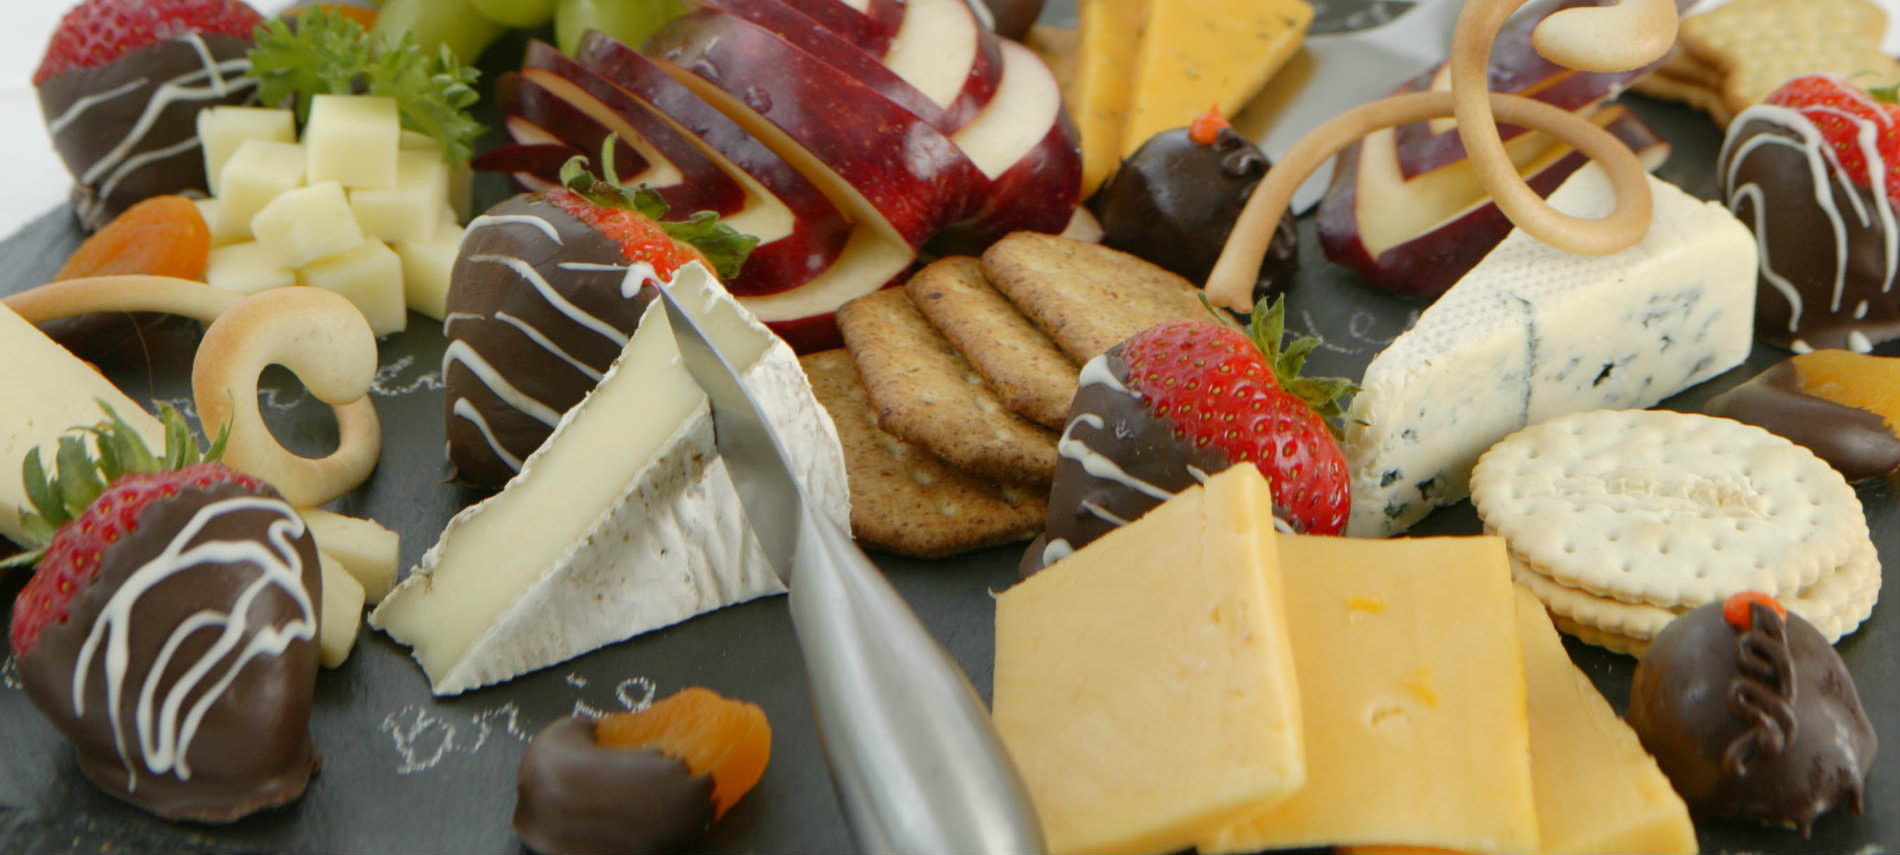 Lovely spread of various cheeses and crackers with chocolate-dipped strawberries.